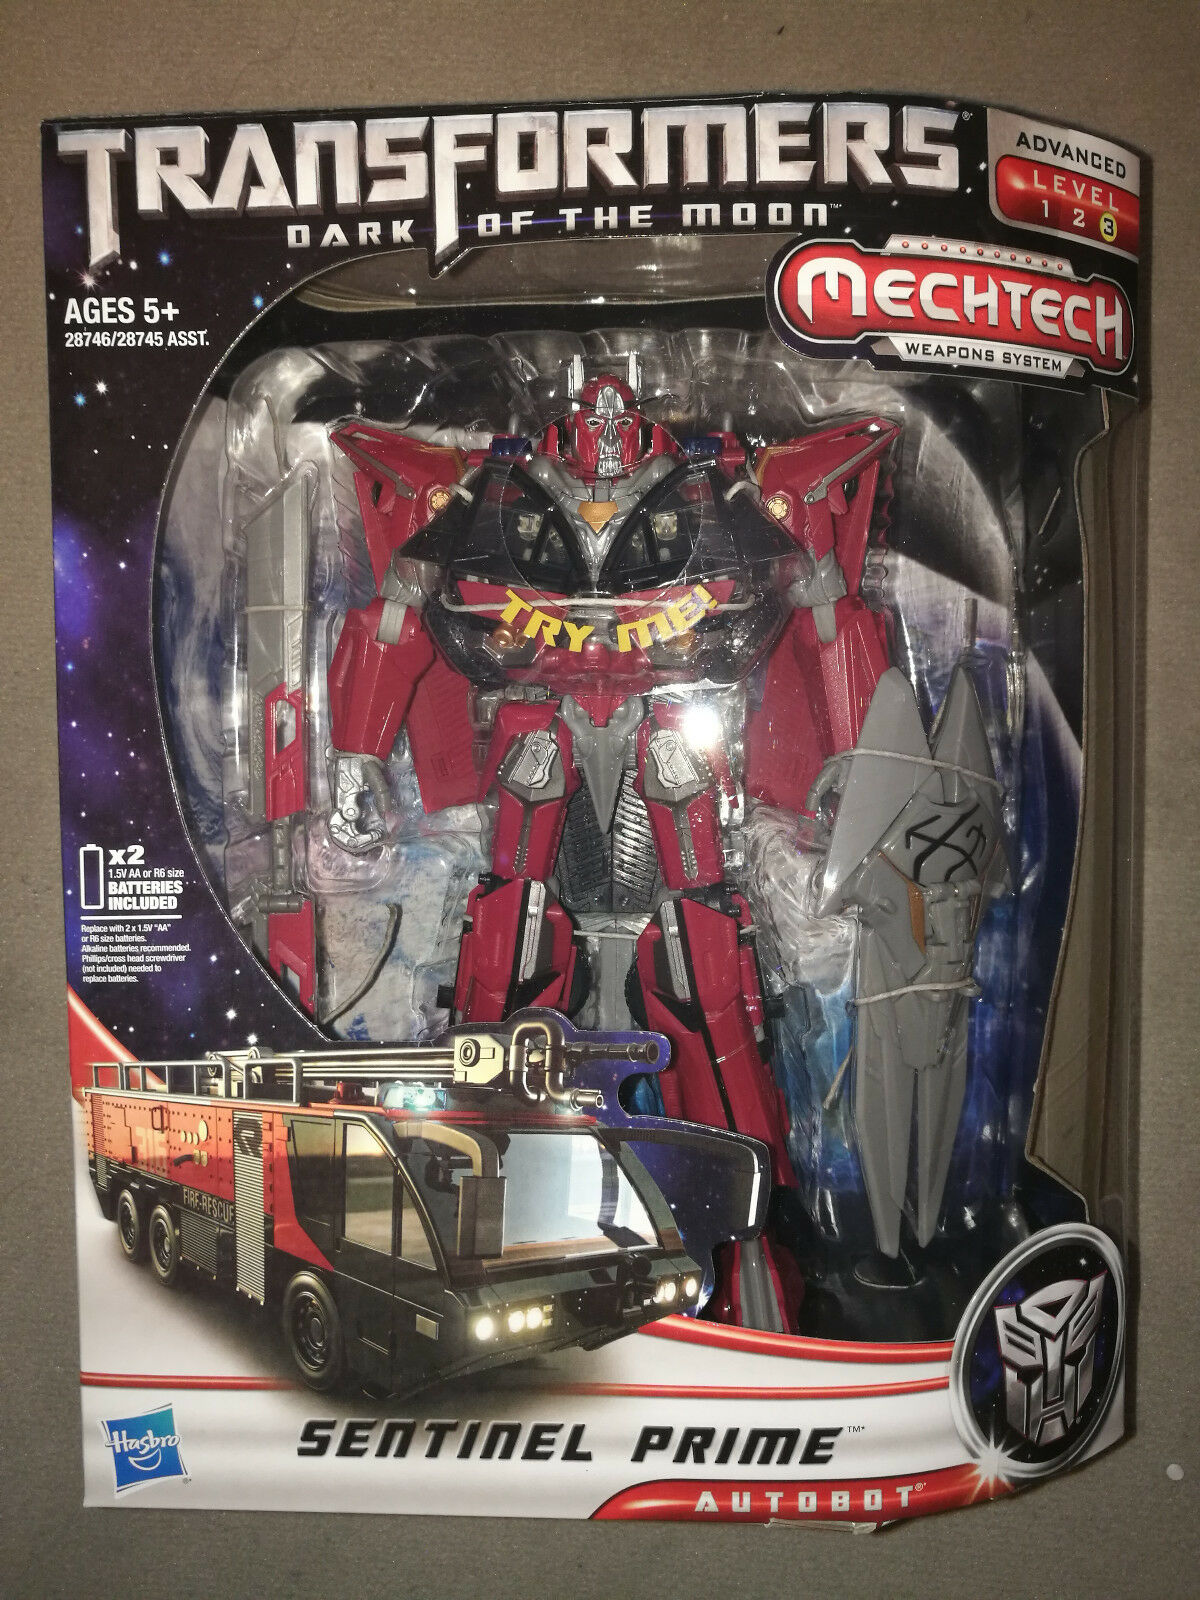 TRANSFORMERS MOVIE DARK OF THE MOON LEADER CLASS SENTINEL PRIME